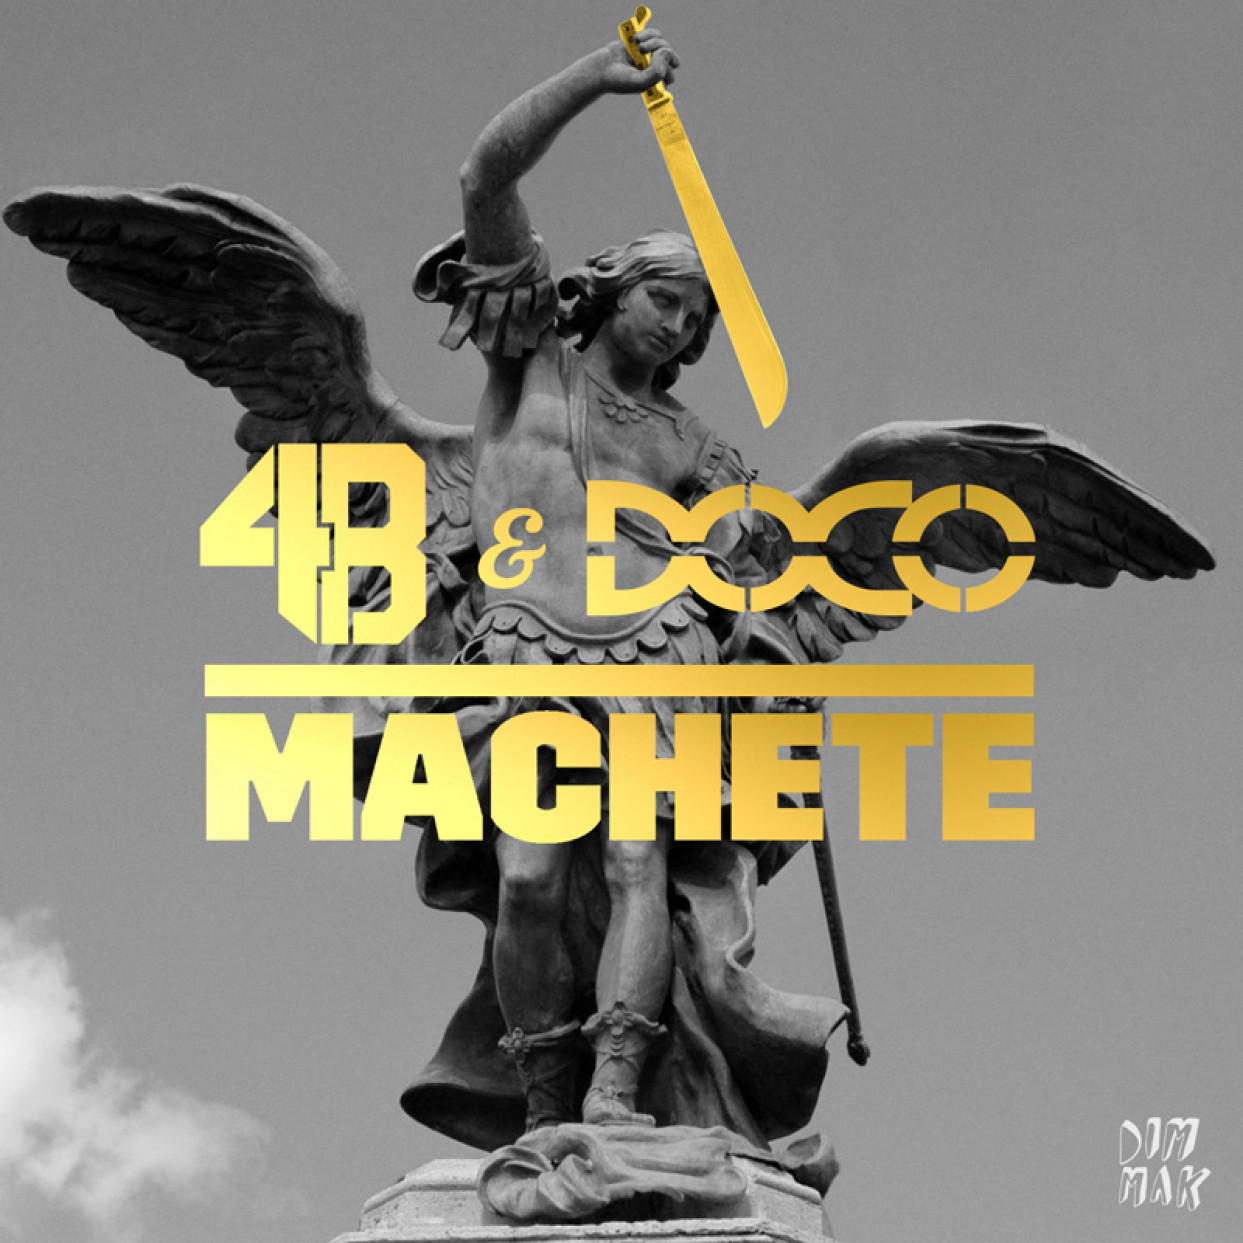 "4B & DOCO ""Machete"" Out Now on Dim Mak"